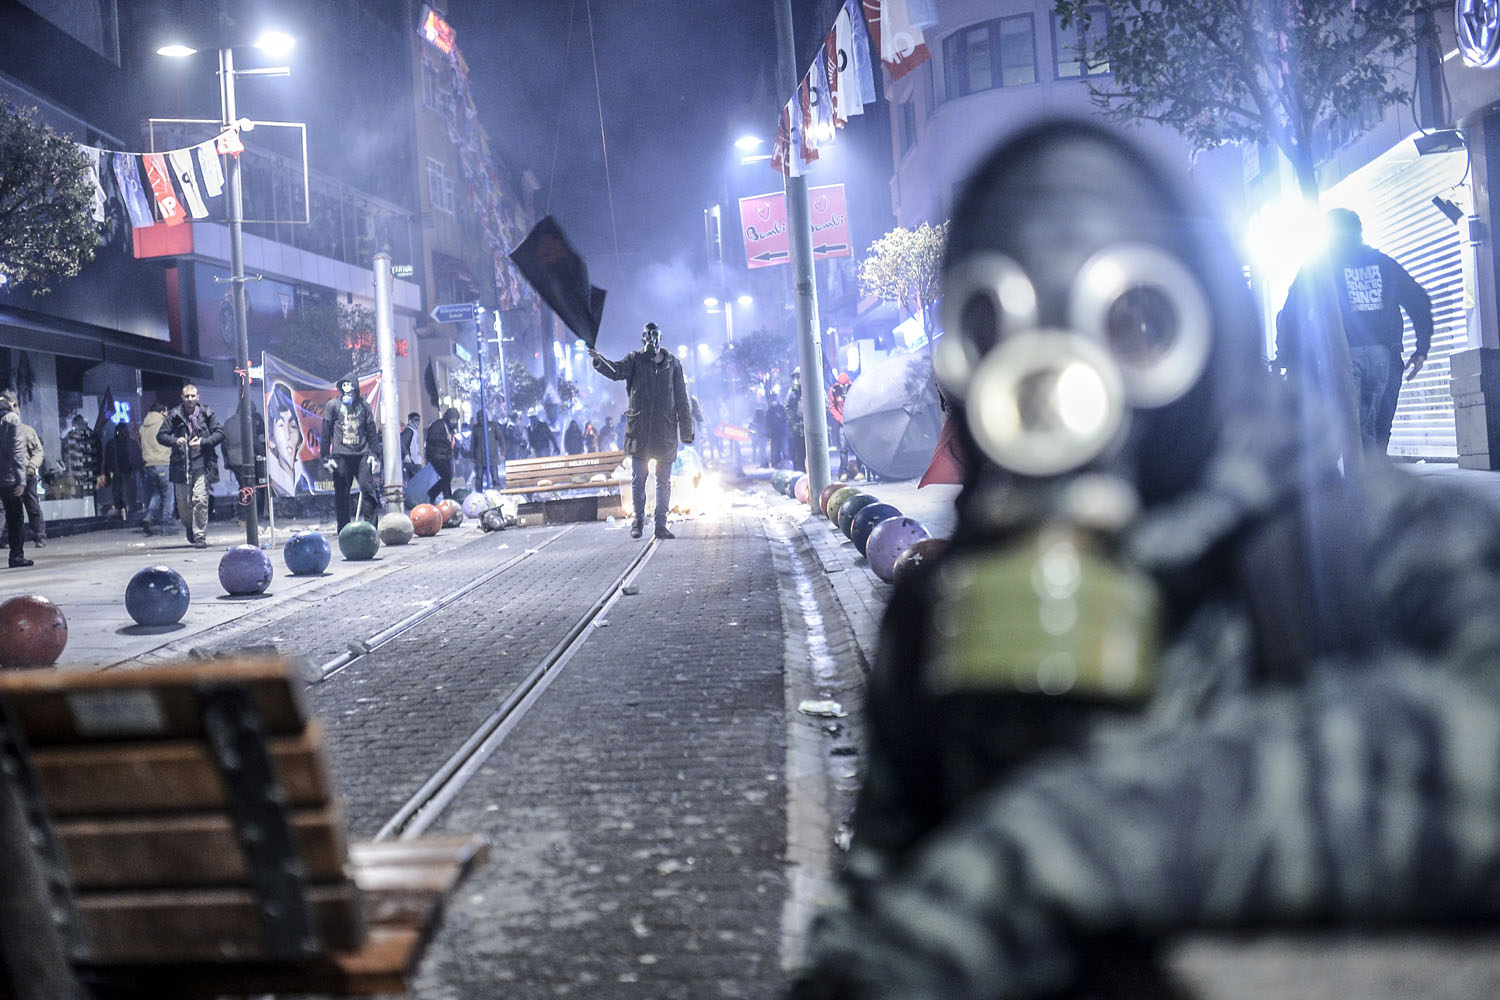 A protester waves a black flag during clashes with riot police in Kadikoy, on the Anatolian side of Istanbul,  March 11, 2014.